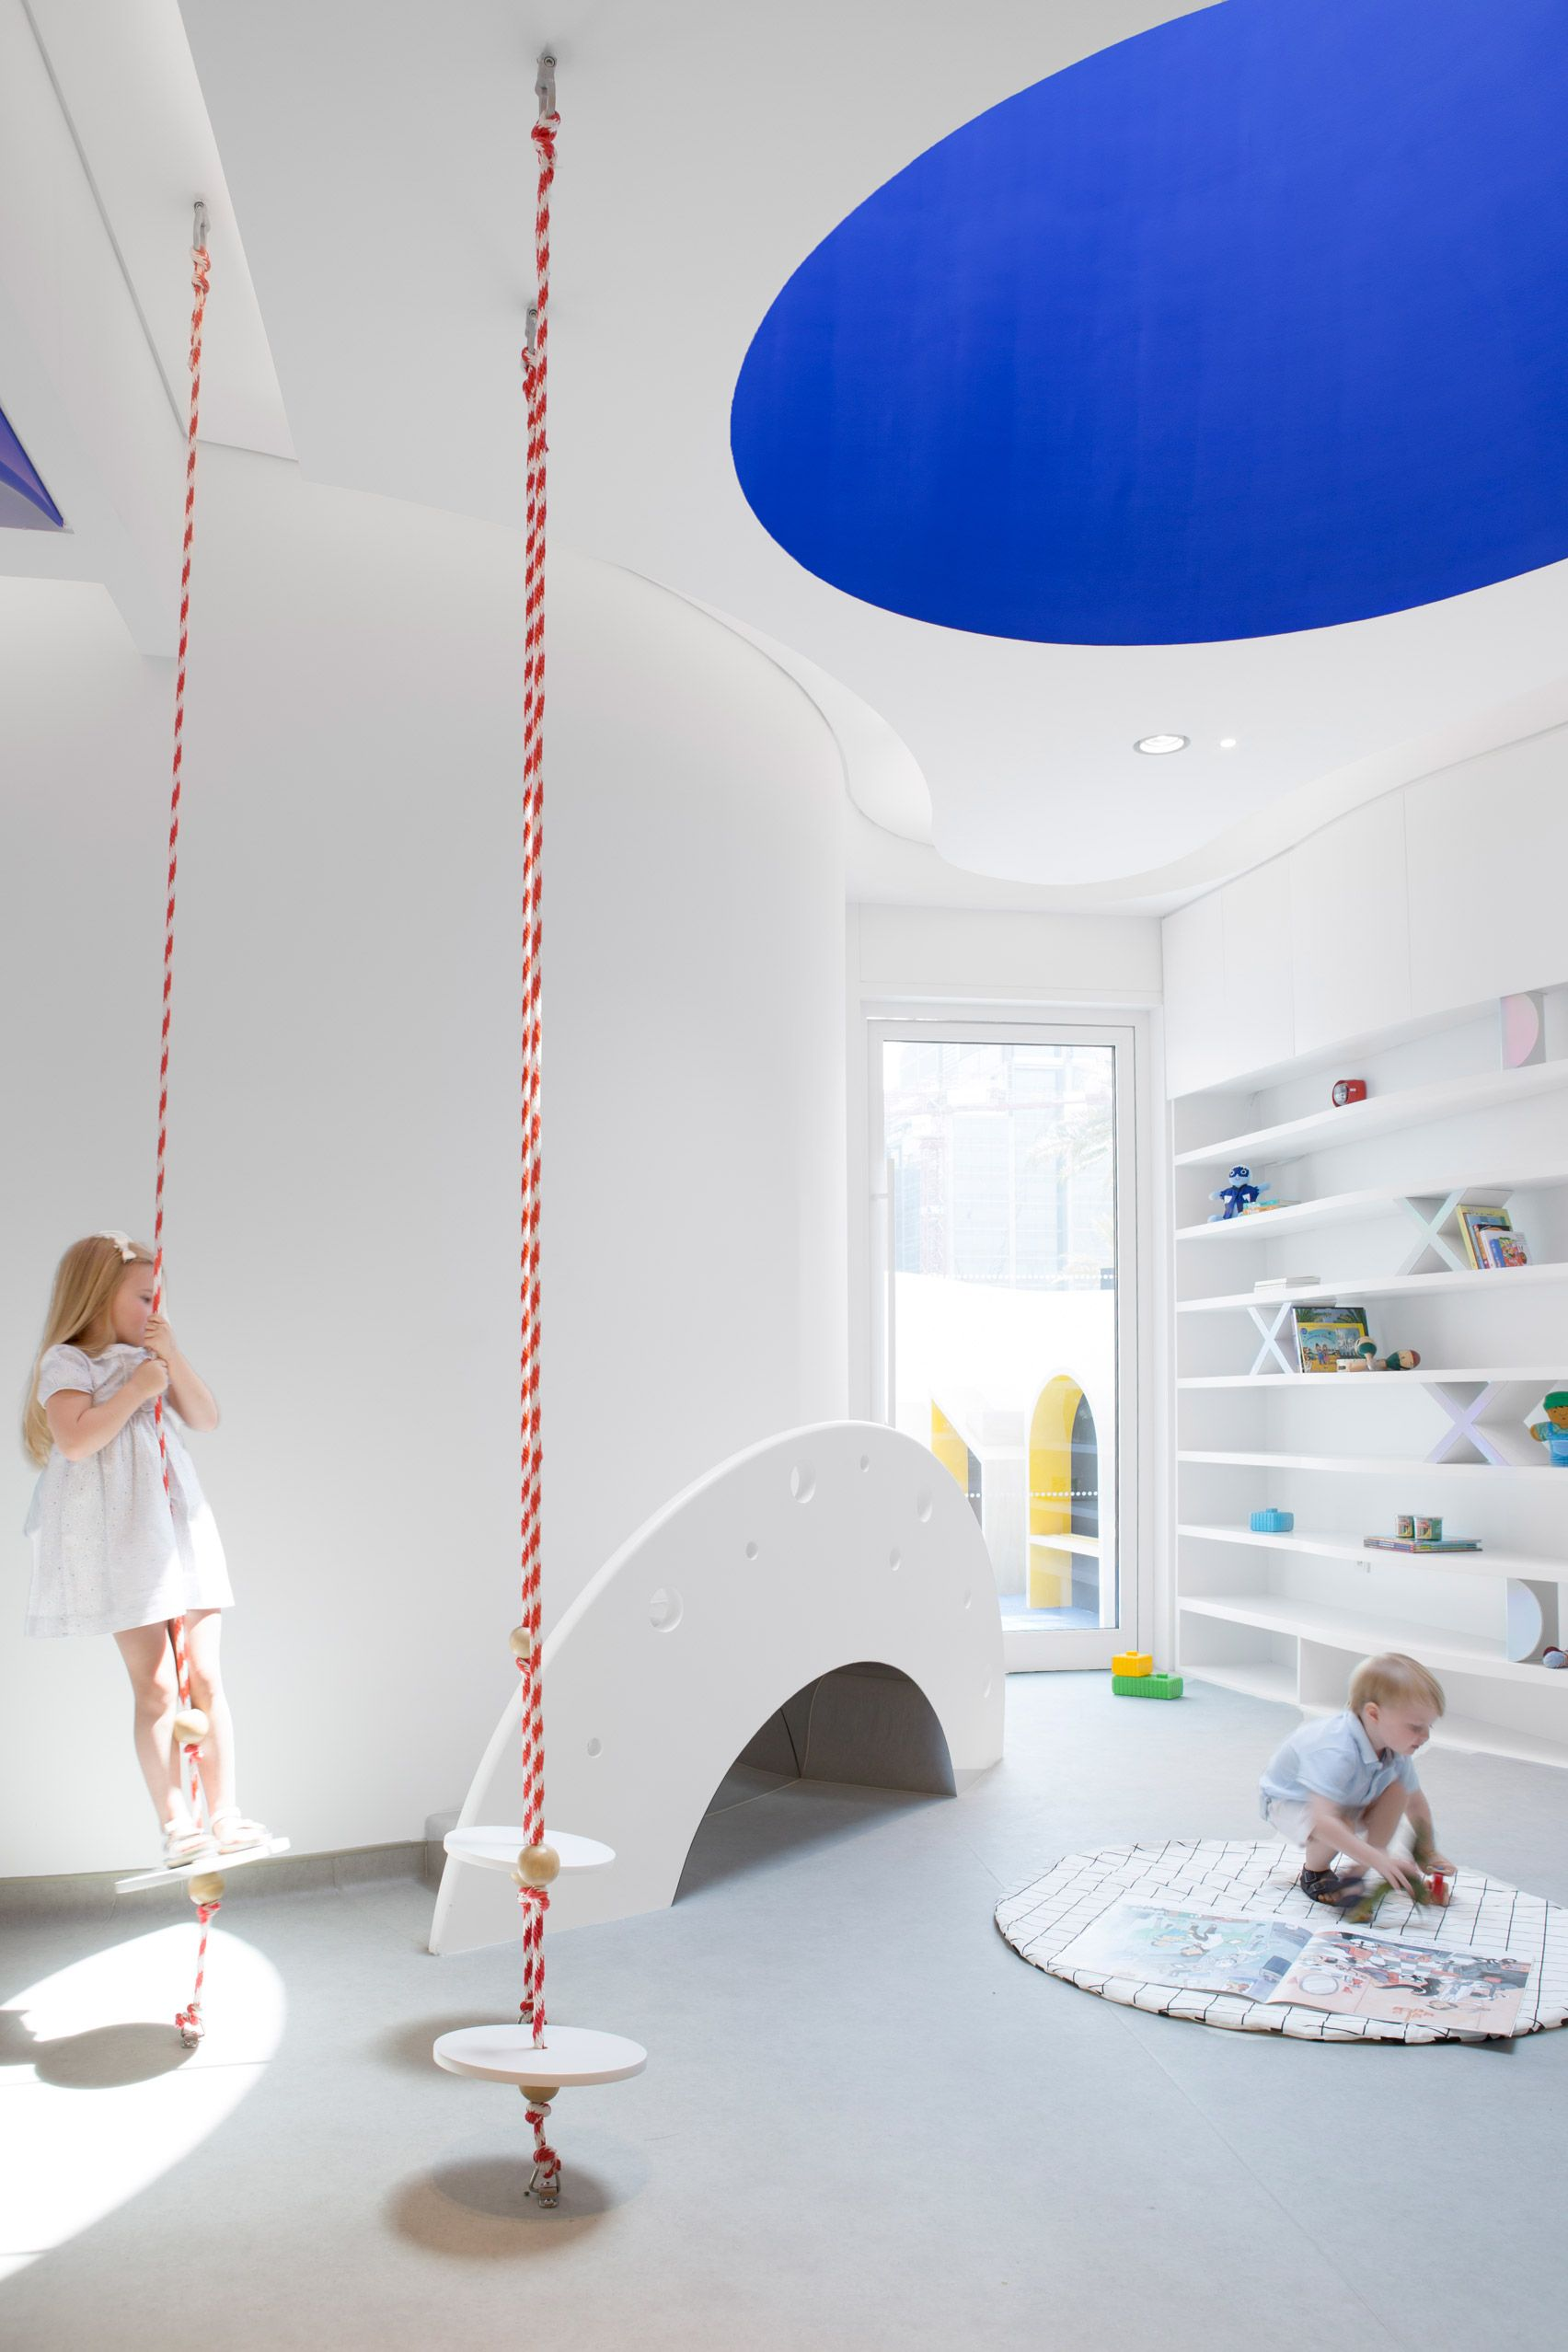 Roar S Nursery Of The Future Is A High Tech Learning Space For